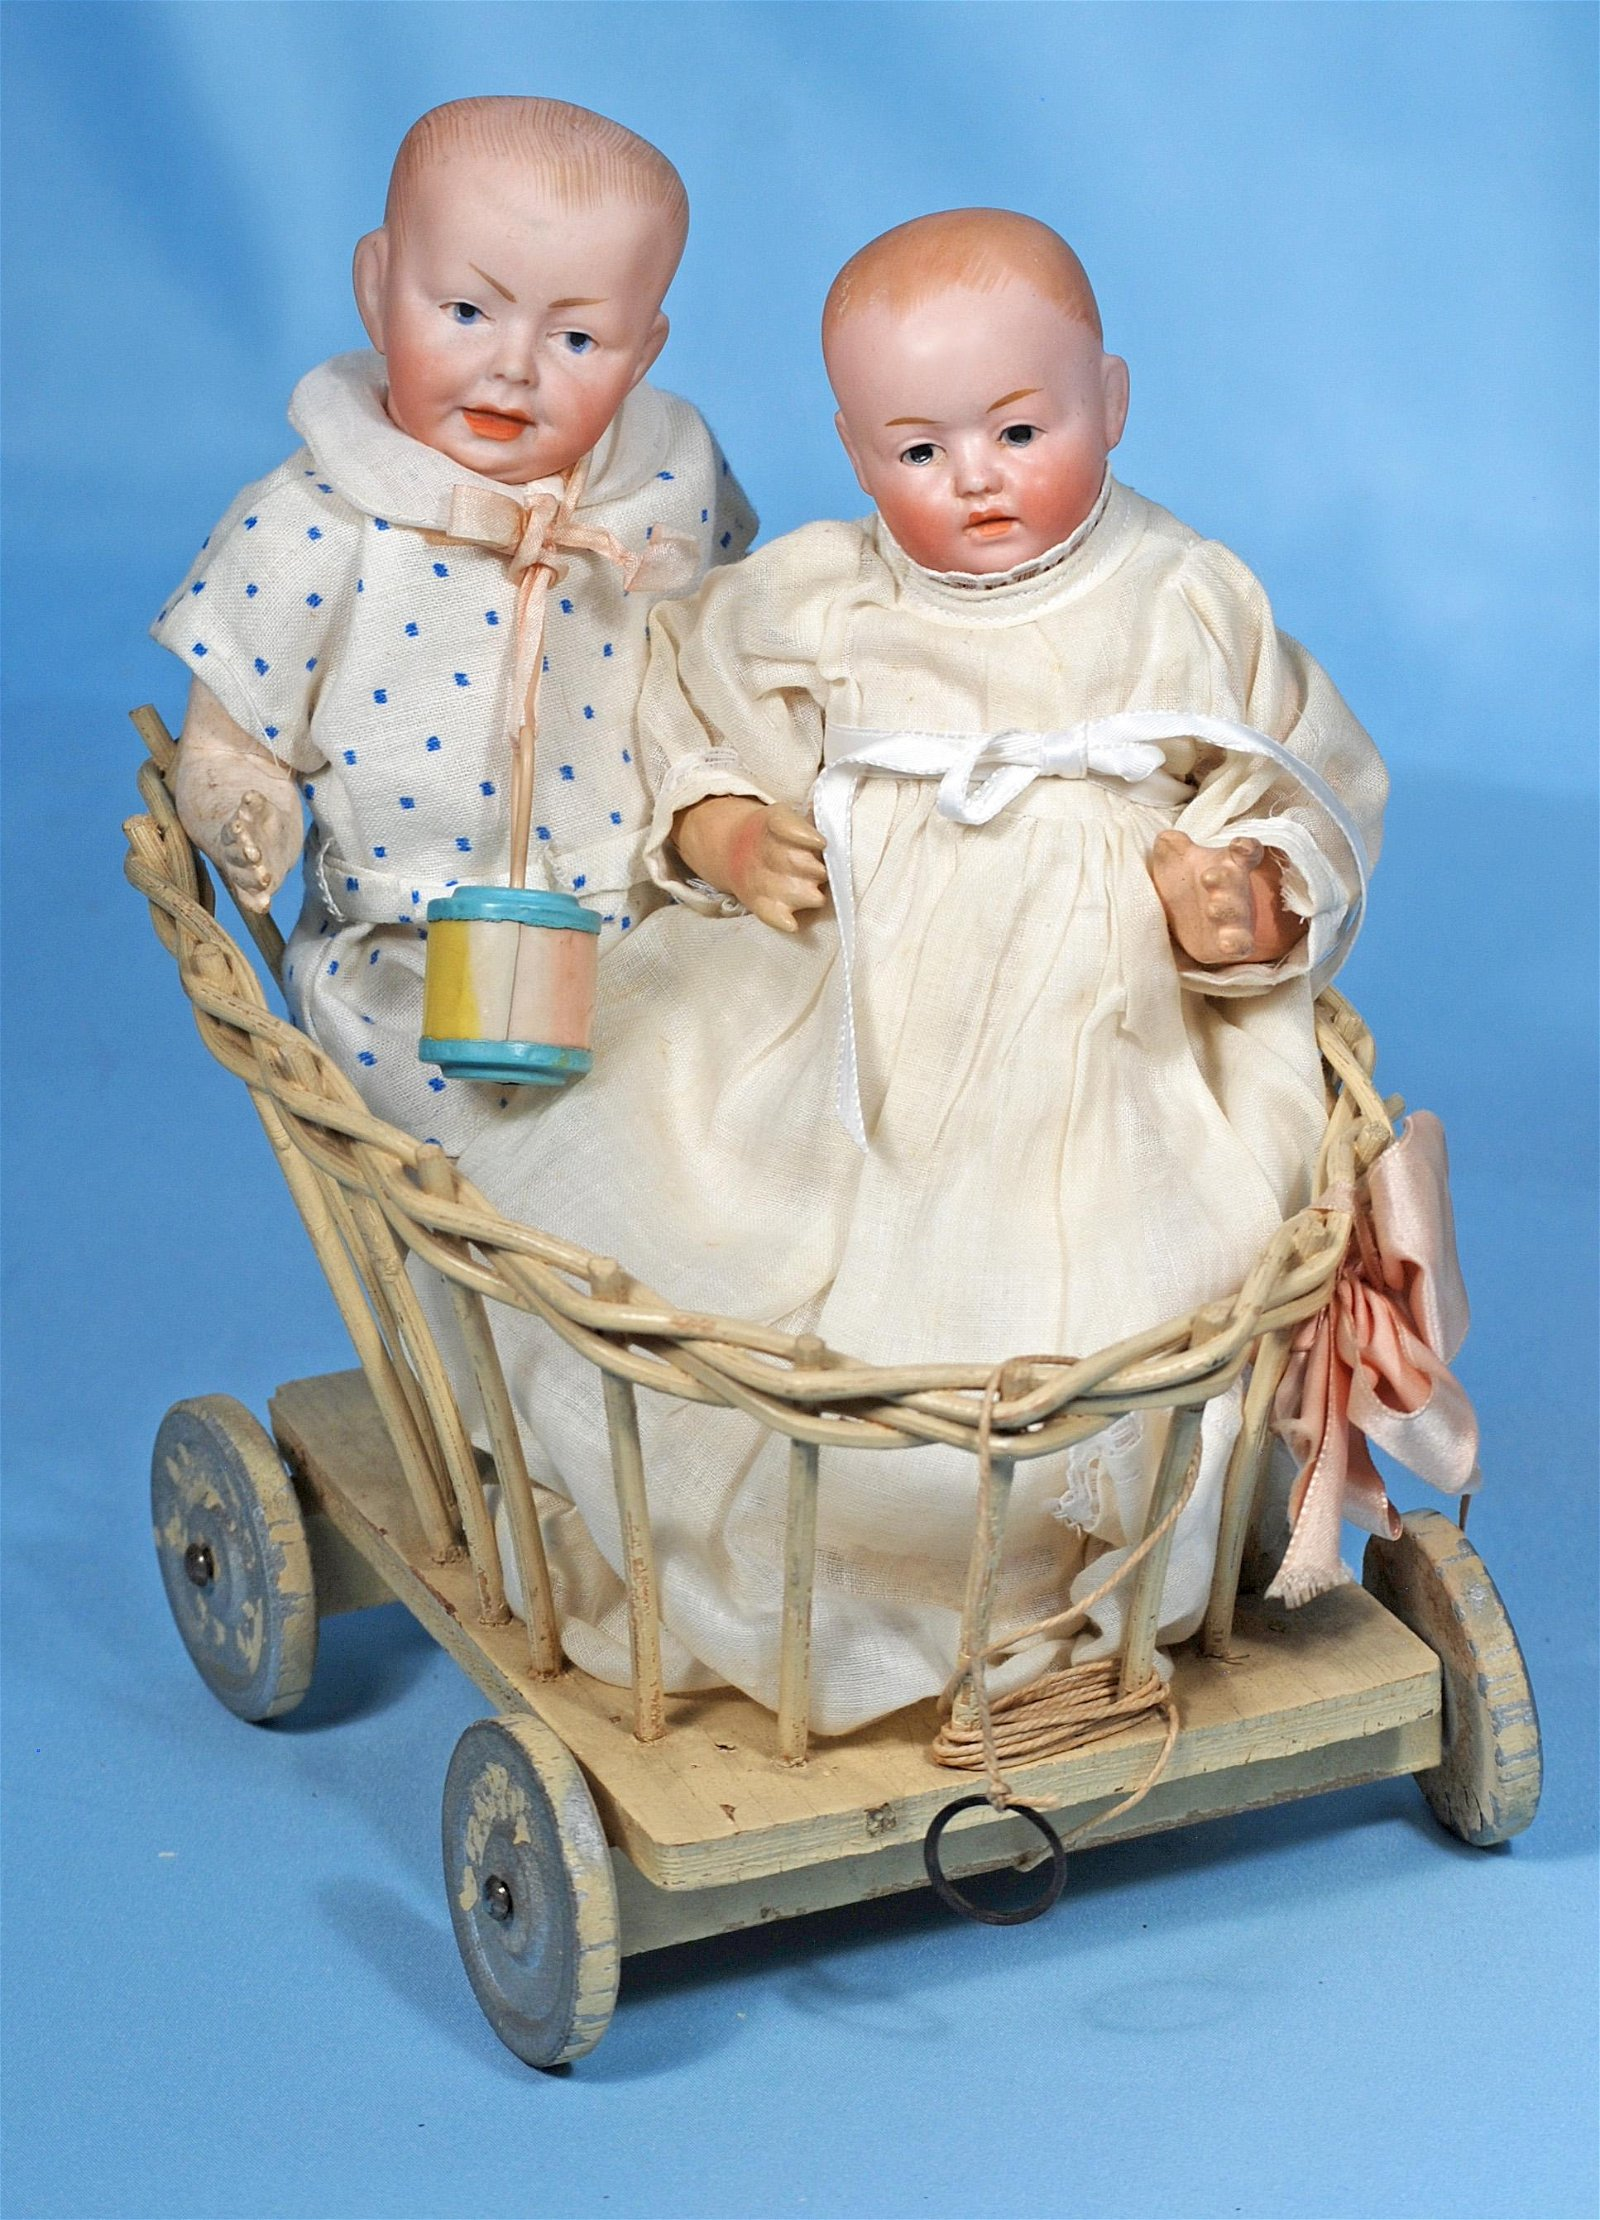 TWO PETITE GERMAN BISQUE CHARACTER BABIES IN ANTIQUE